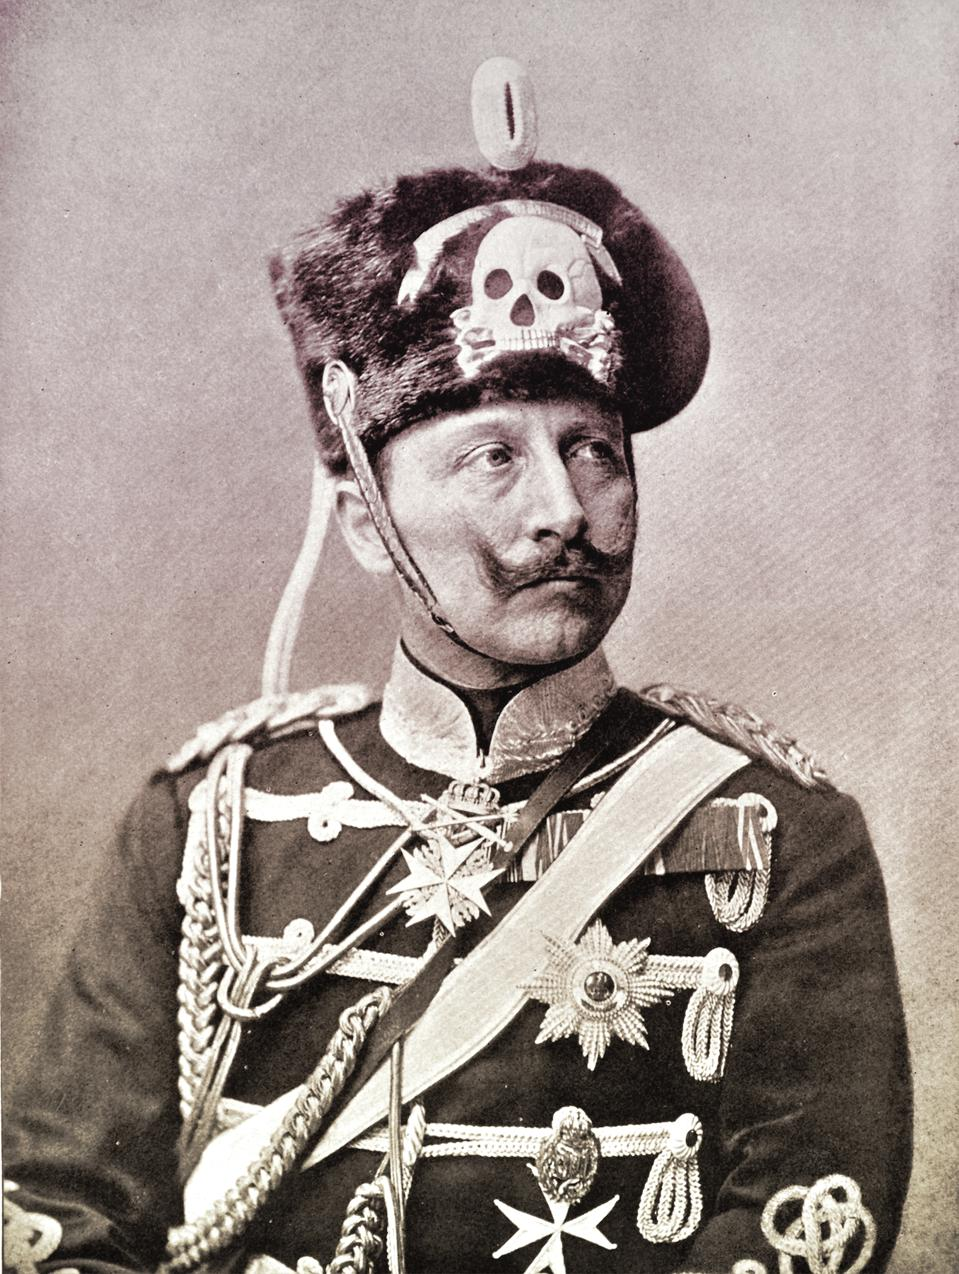 Kaiser Wilhelm II ascended to the German throne at age 29 in 1888.